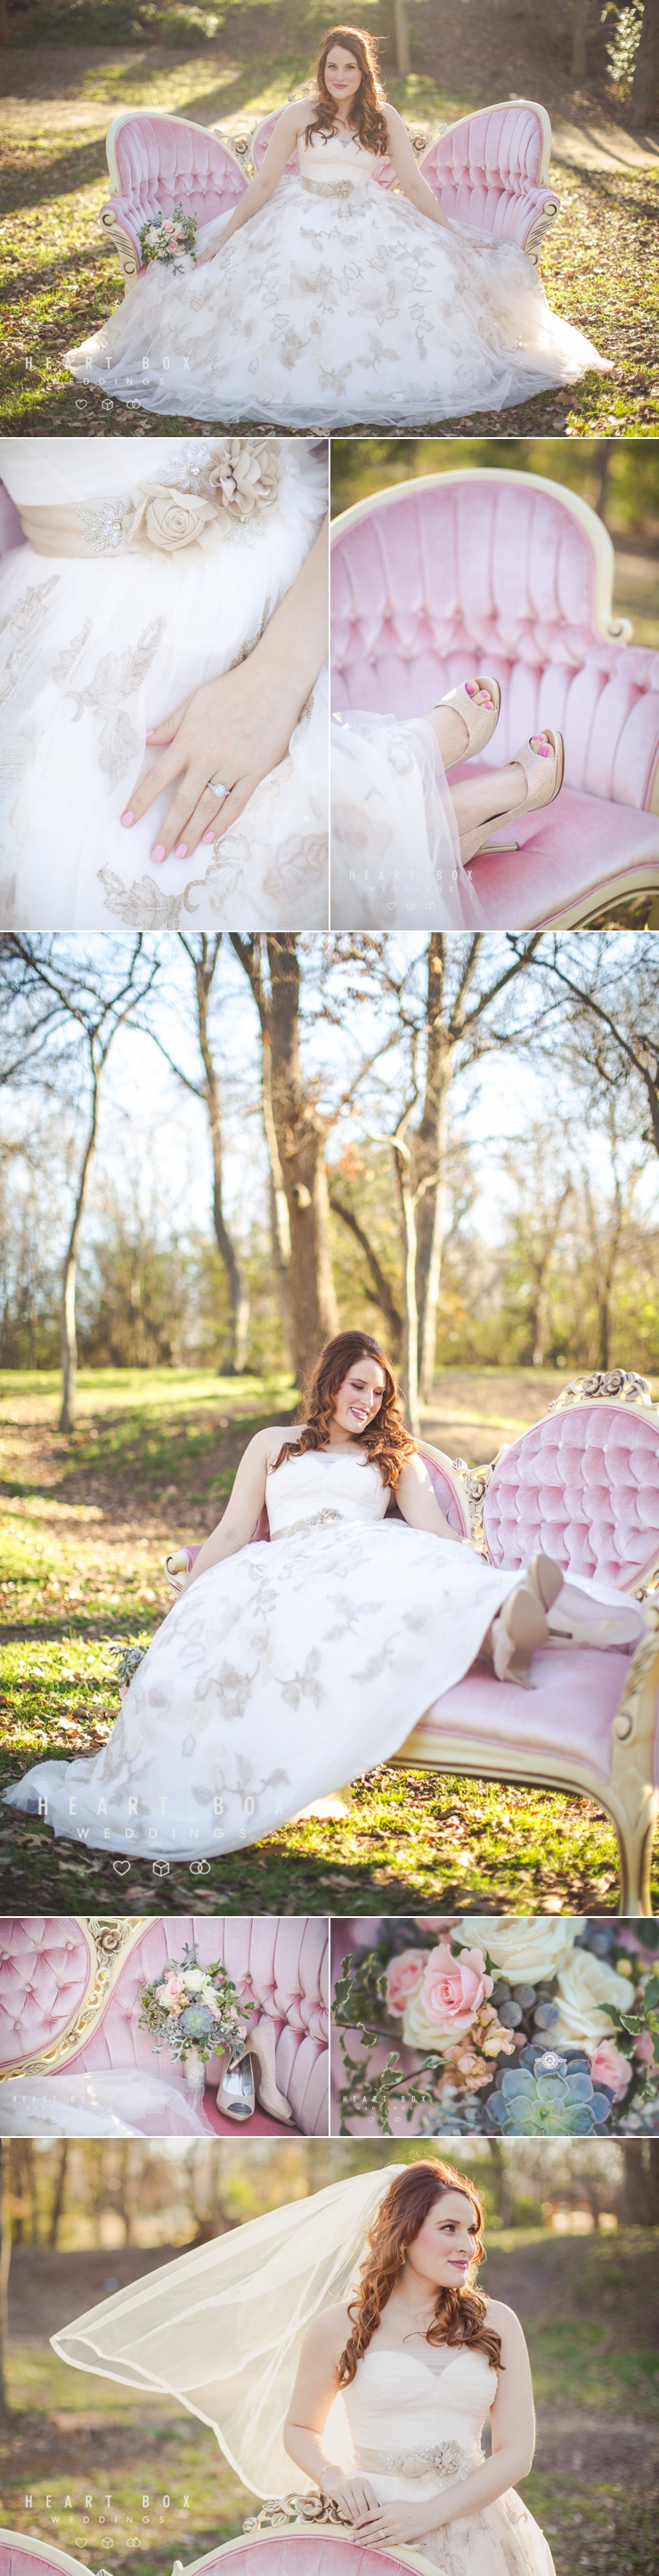 Grapevine Bridal Photography